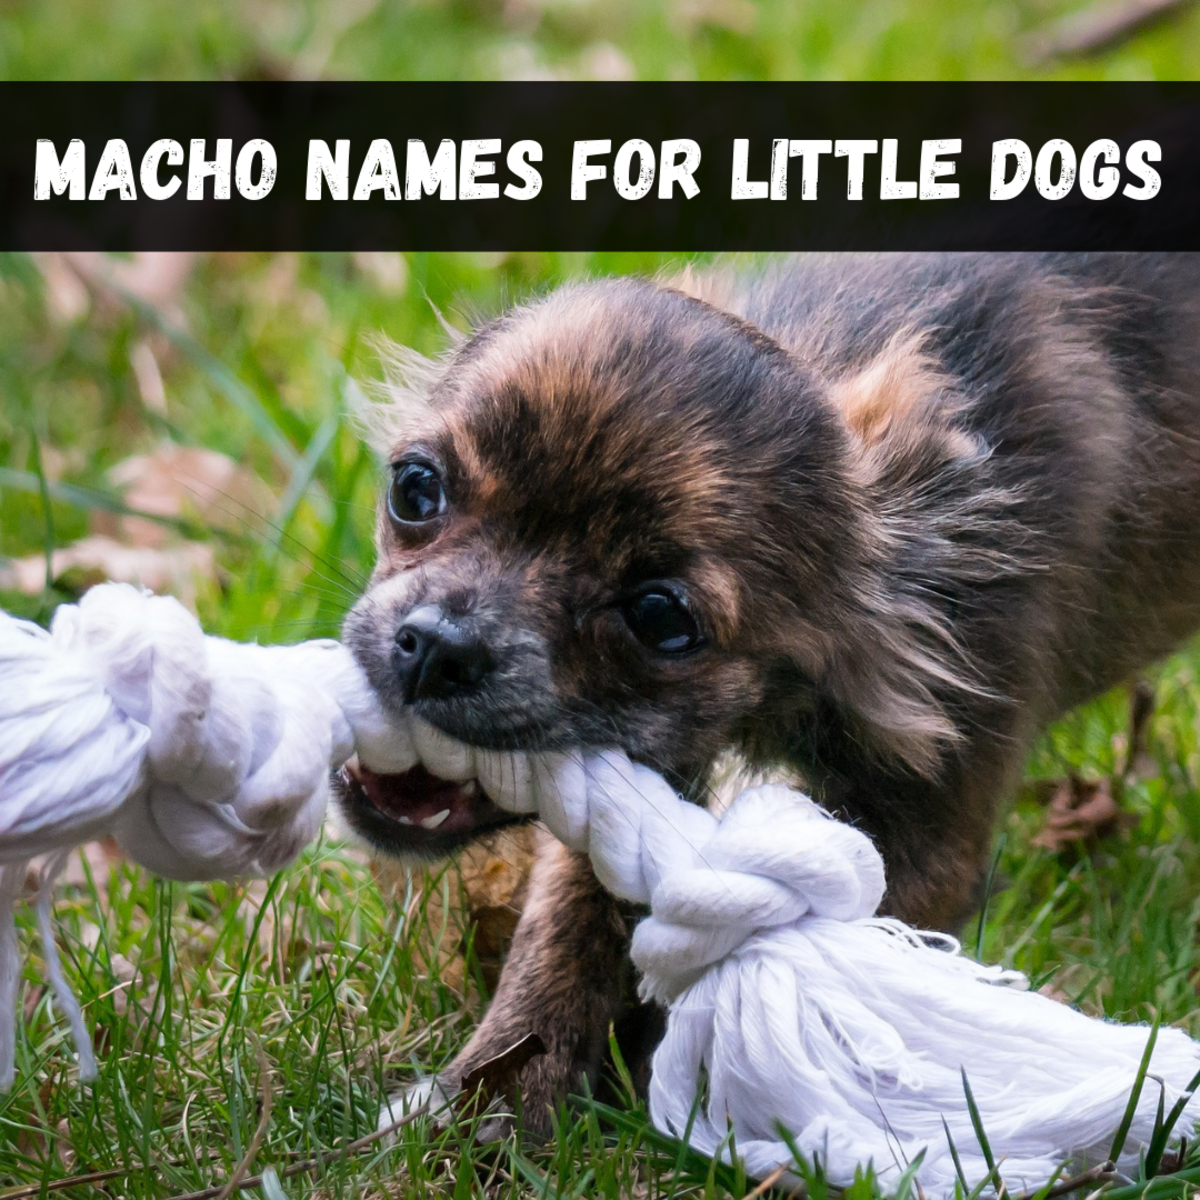 Want a big, tough name for your little Chihuahua or Maltese? Check out these ideas!